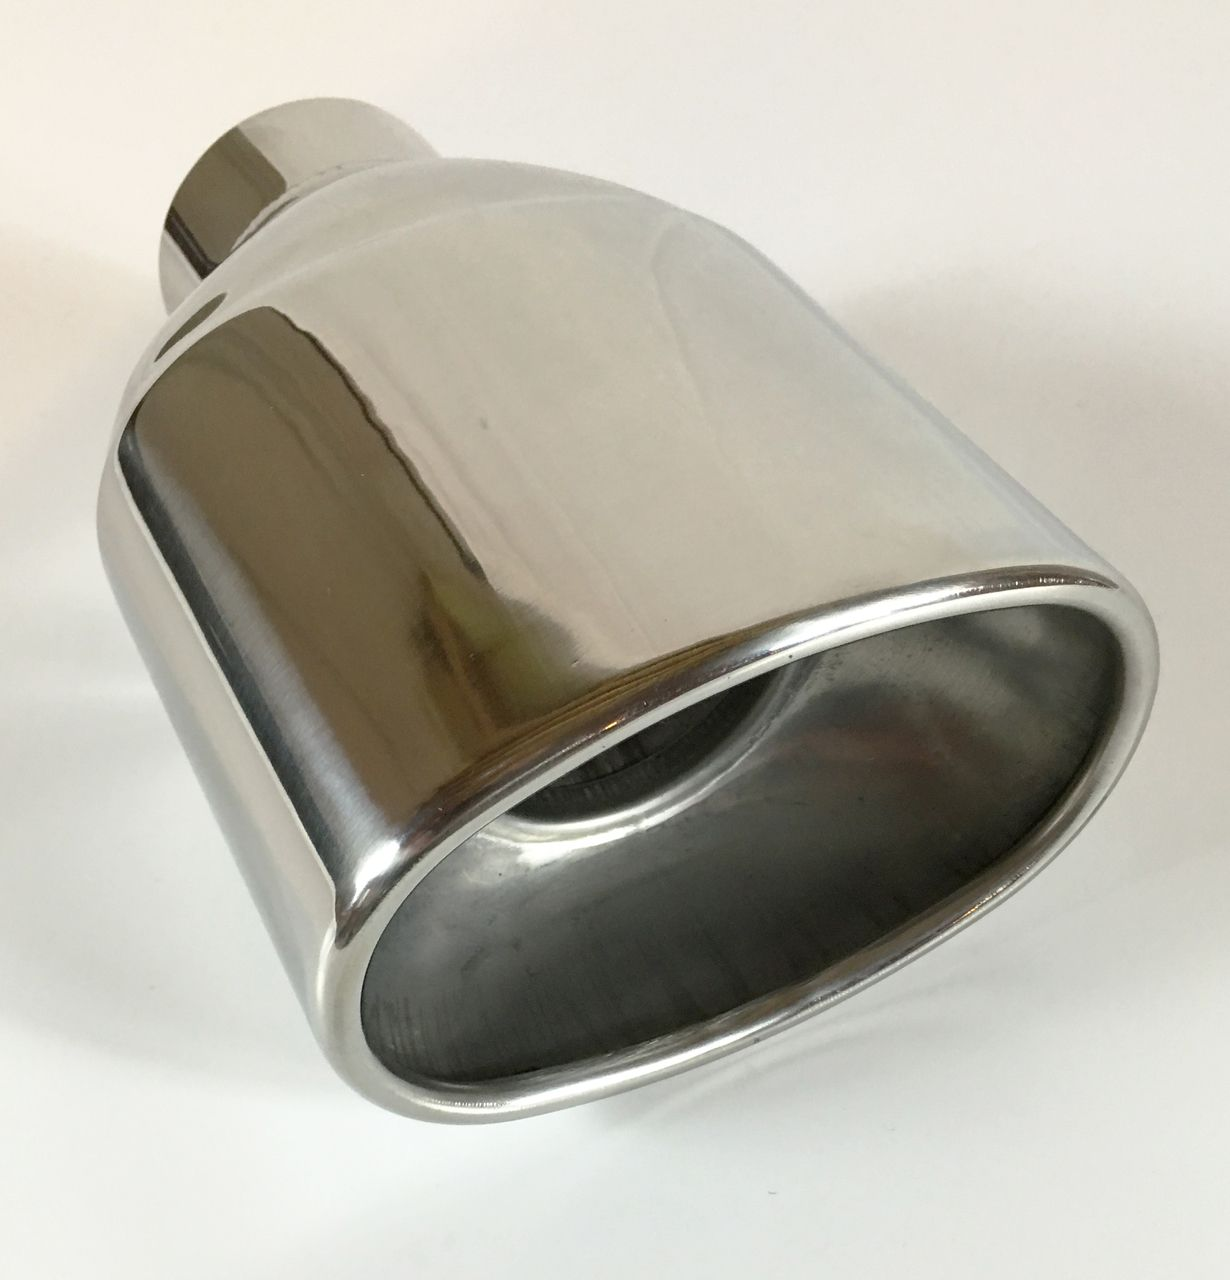 """Exhaust Tip 5.50 x 3.5 Dia OD Oval 7.50/"""" Long 2.50/"""" Inlet Double Wall Stainless"""